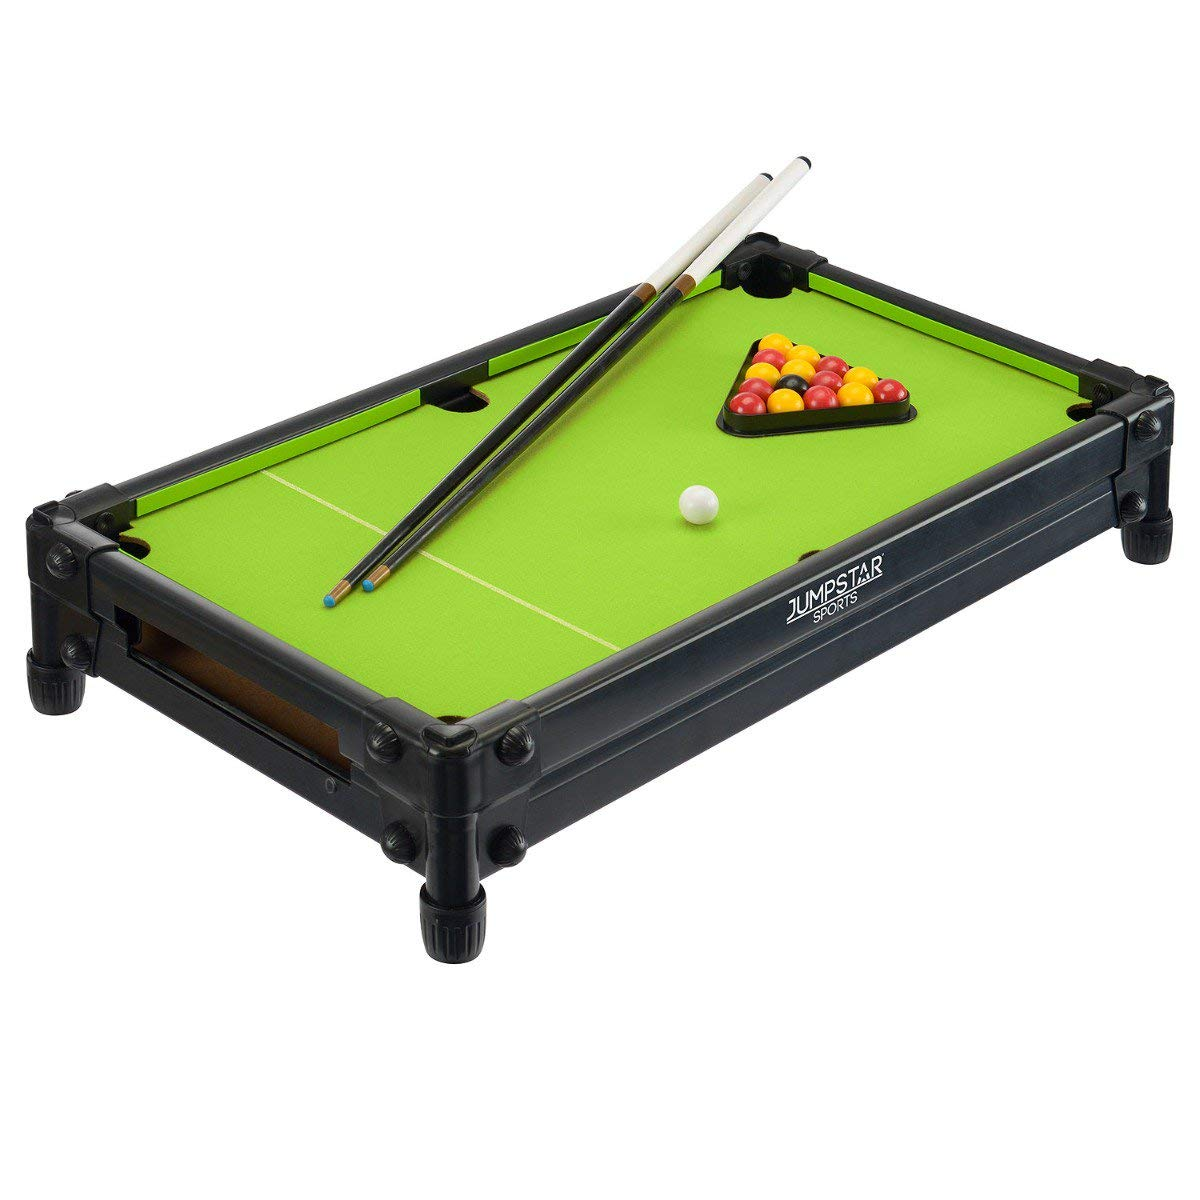 L81cm x W41cm x H70cm Freestanding /& Tabletop Design Kids Mini Indoor Billiard Game ToyStar Miniature Pool Table